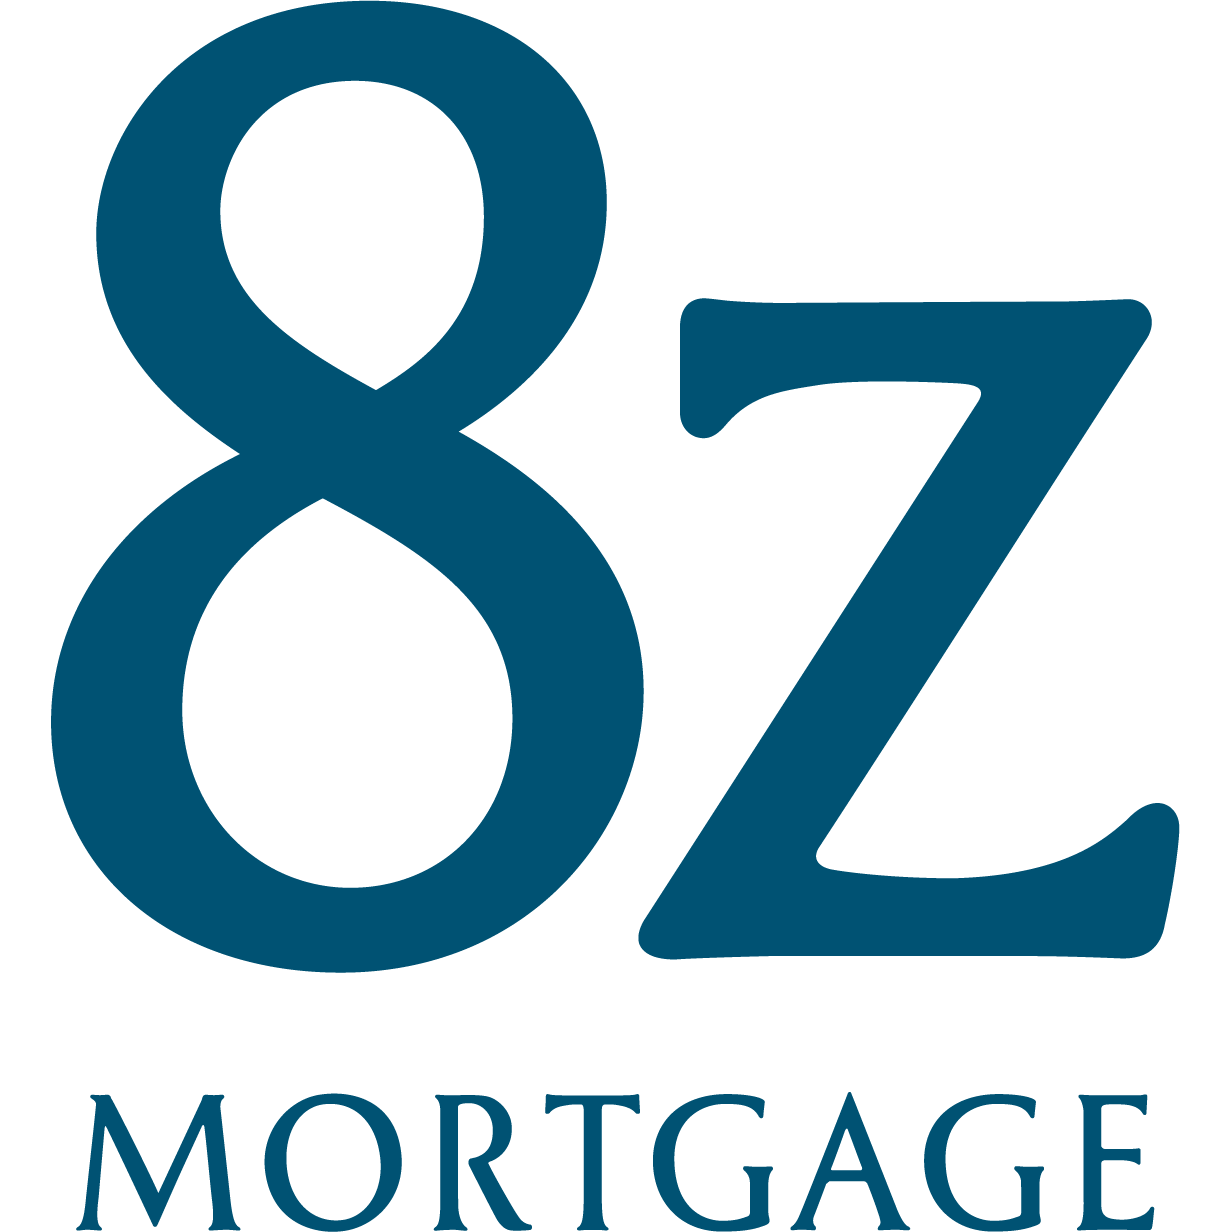 8z Mortgage, David Meza, NMLS# 1724443 image 0